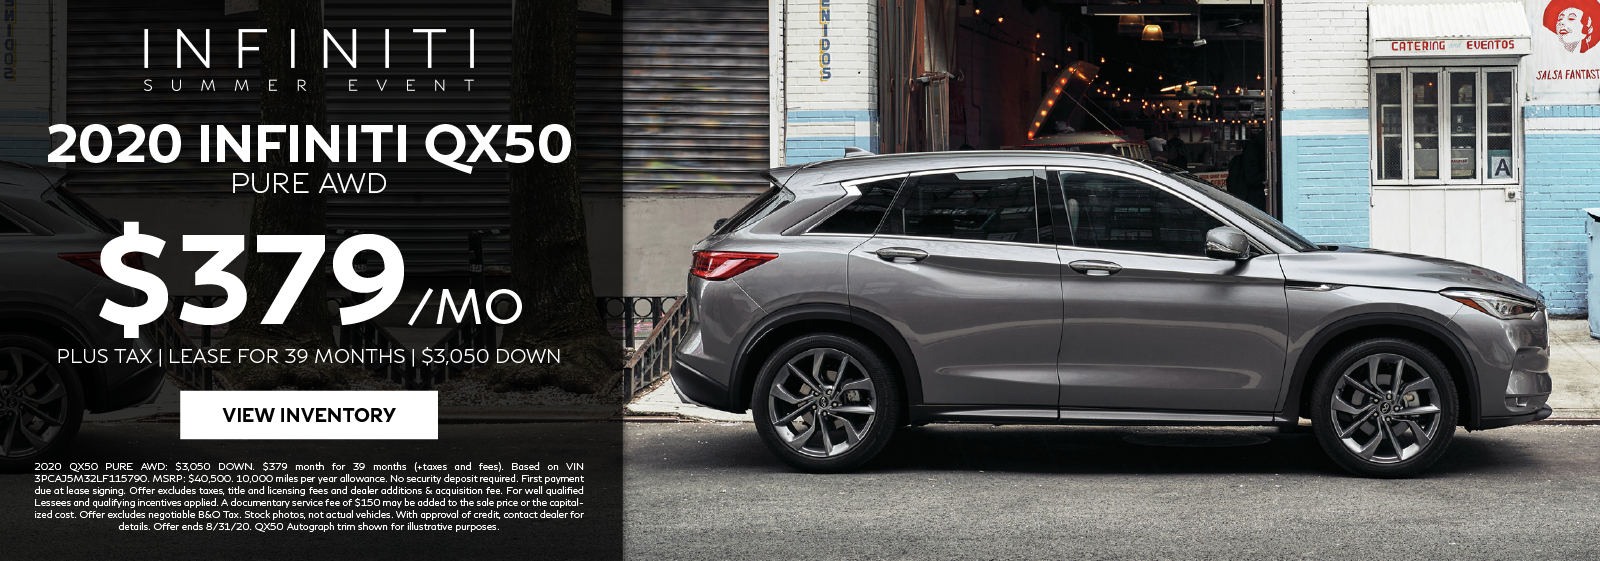 Lease a 2020 QX50 PURE AWD for $379 per month for 39 months. Click to view inventory.